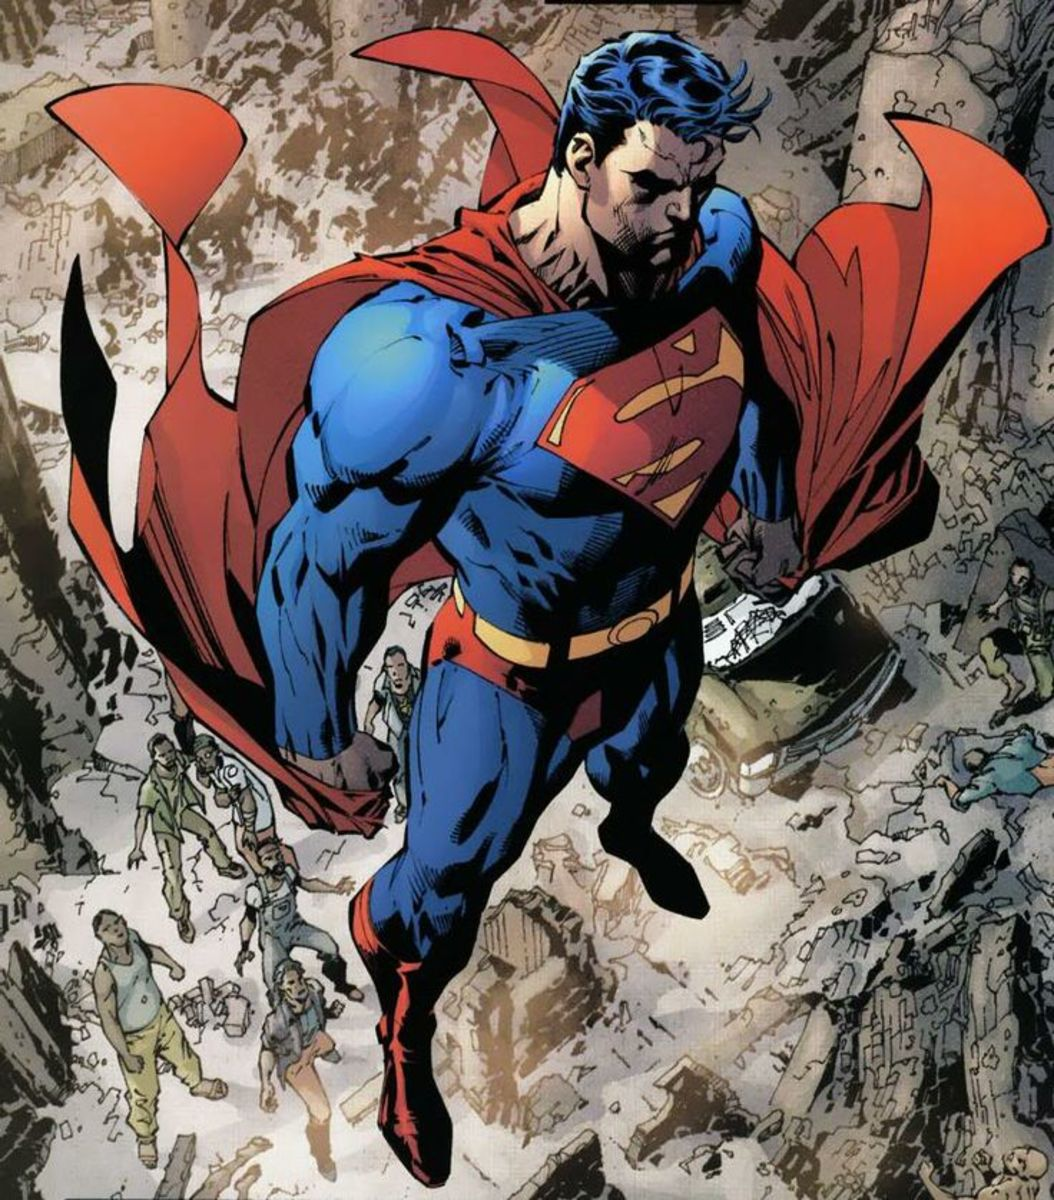 The Man of Tomorrow by Jim Lee